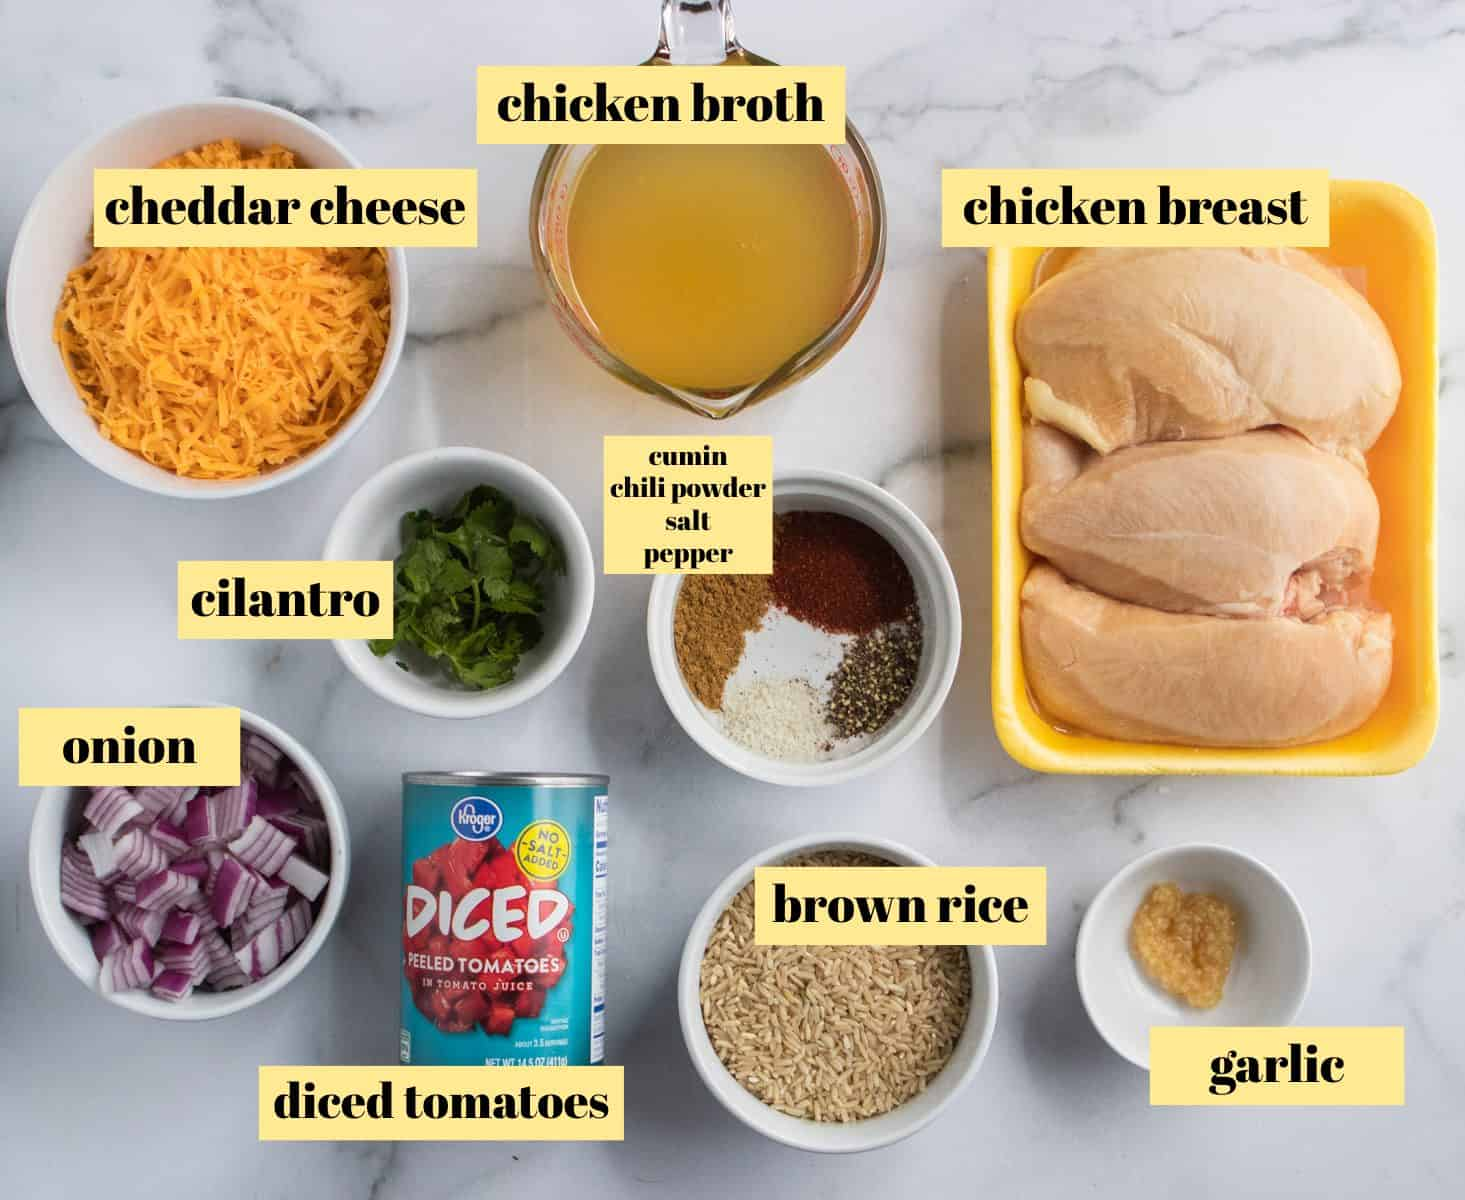 Ingredients to make recipe.